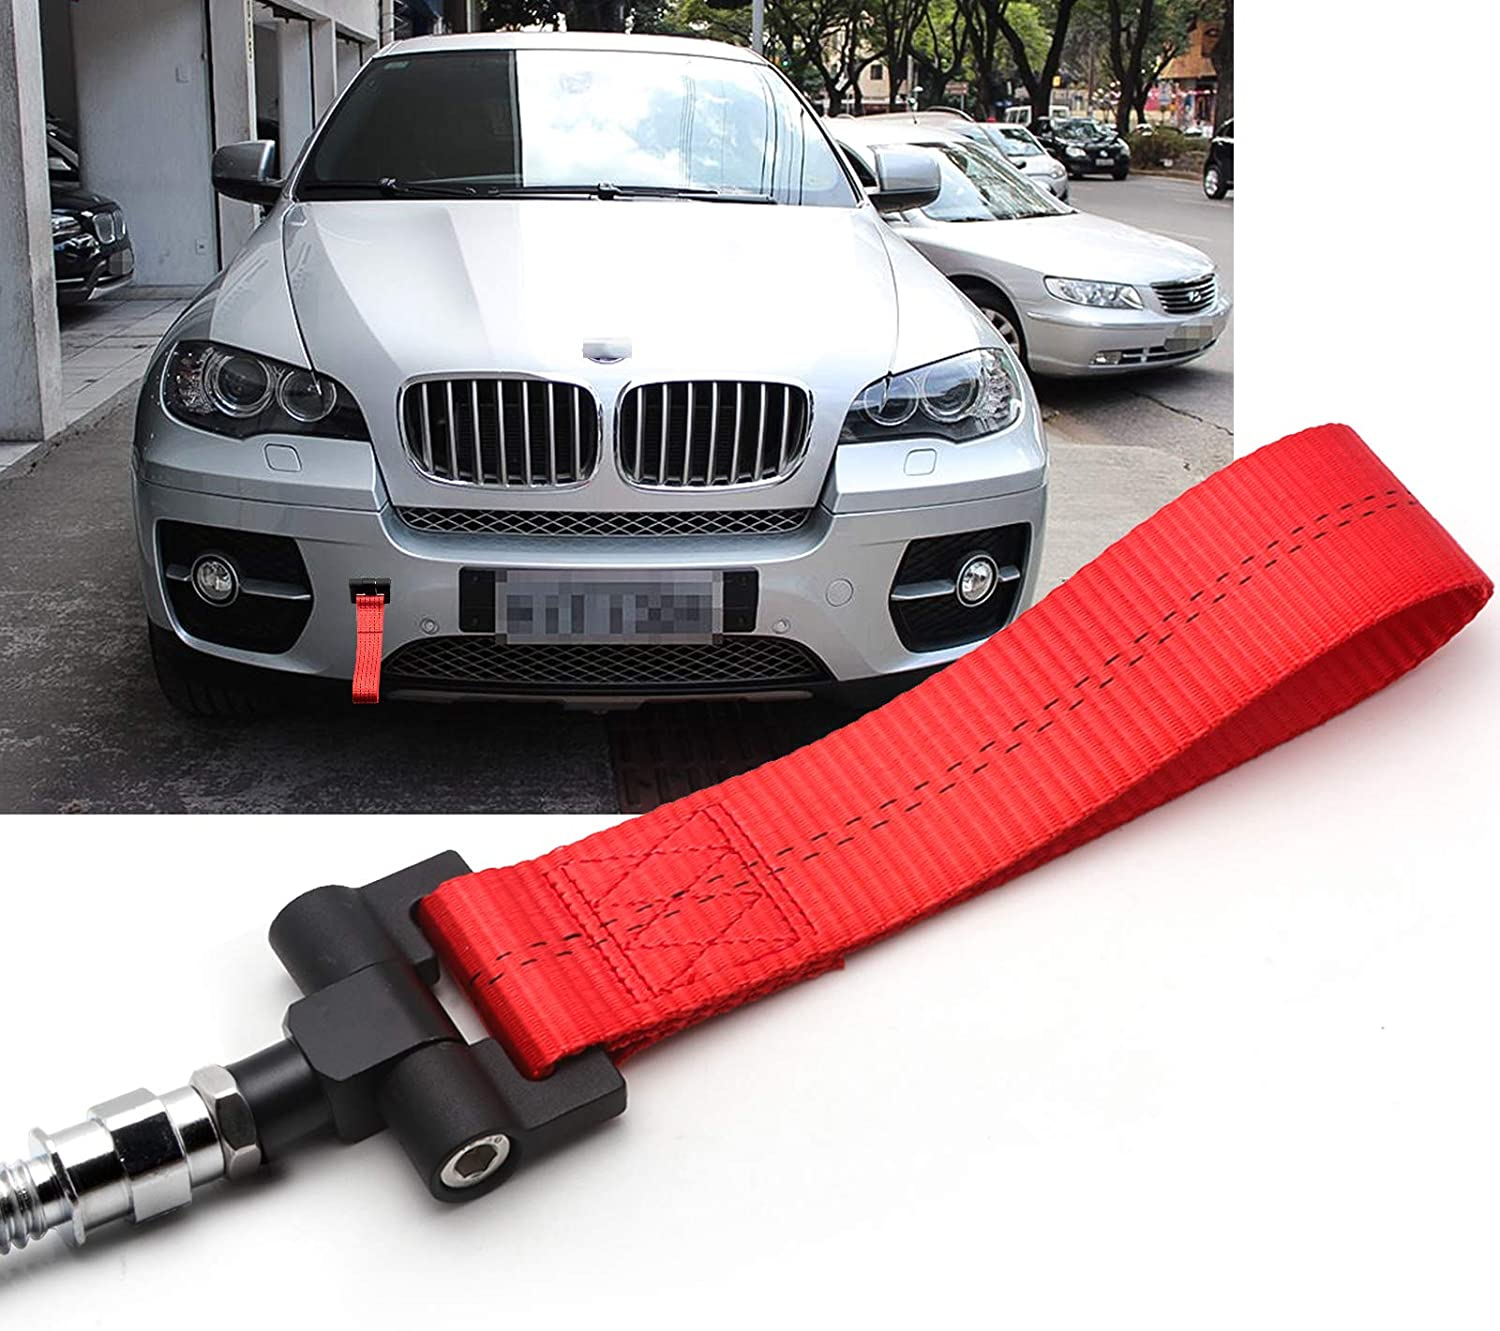 Xotic Tech Black JDM Sporty Tow Hook Adapter with Towing Strap for BMW 1 3 5 6 Series X5 X6 Fit Mini Cooper